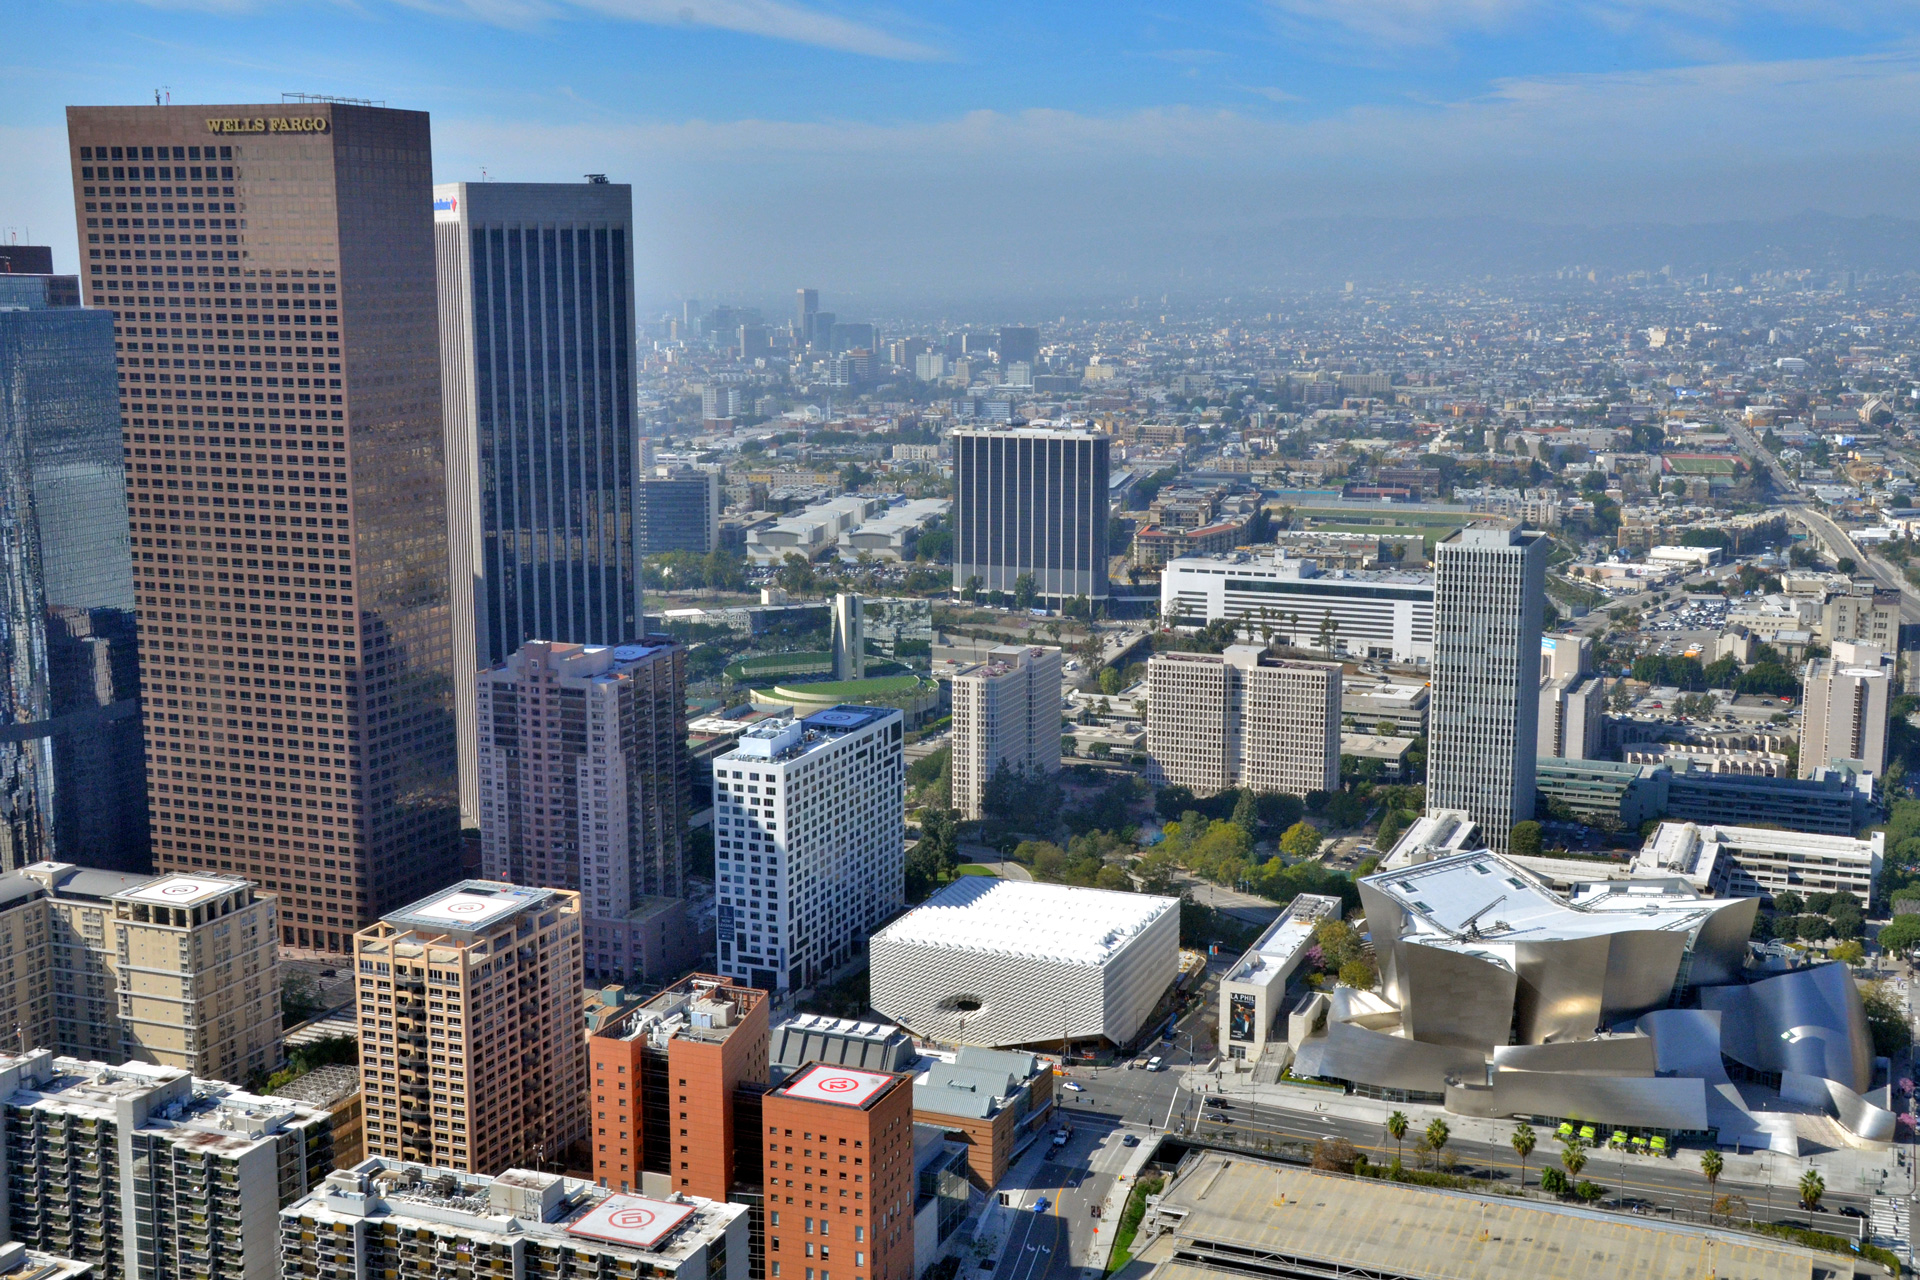 Aerial photo of The Broad museum in downtown Los Angeles; photo by Jeff Duran / Warren Air, courtesy of The Broad and Diller Scofidio + Renfro